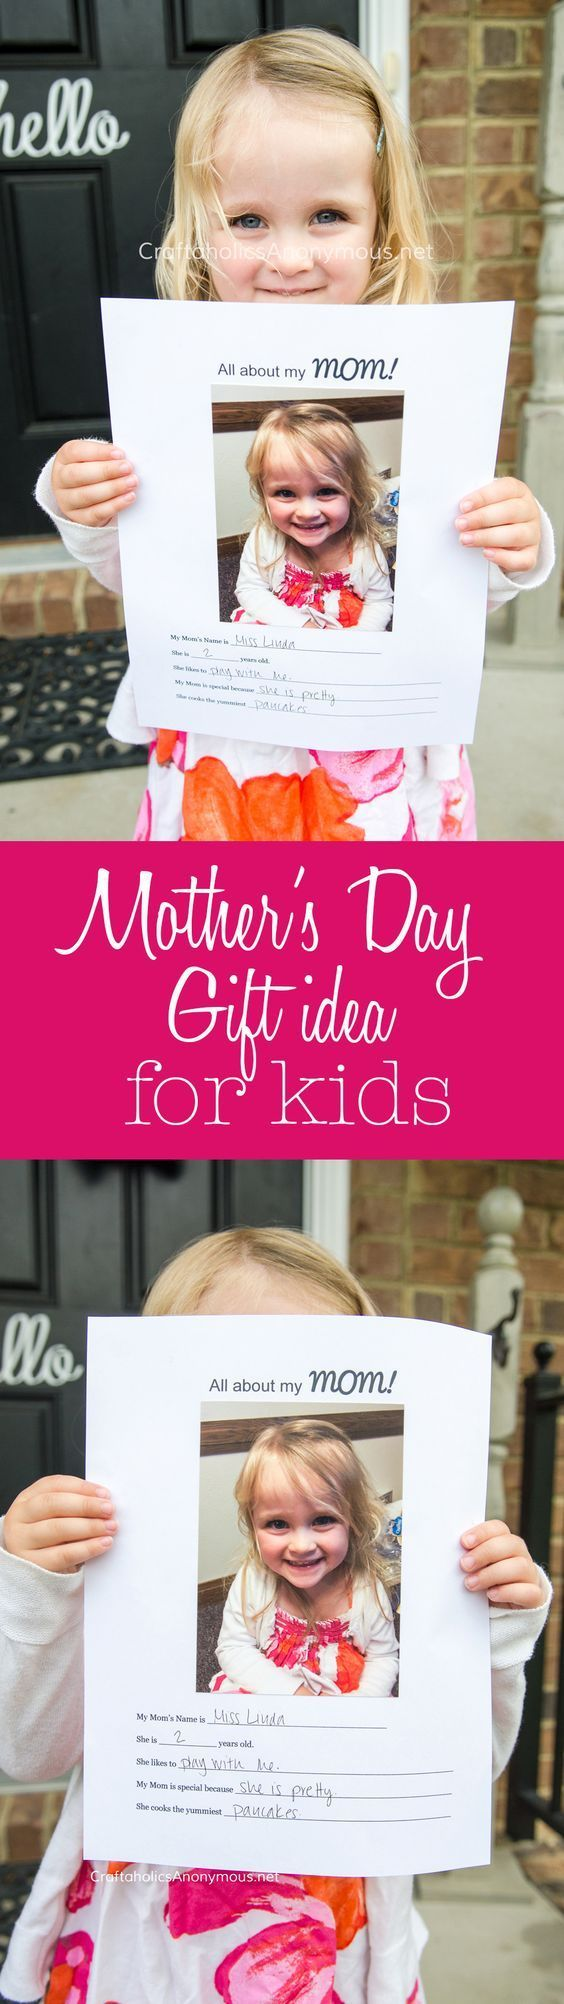 55 best celebrate:mothers day images on pinterest | school